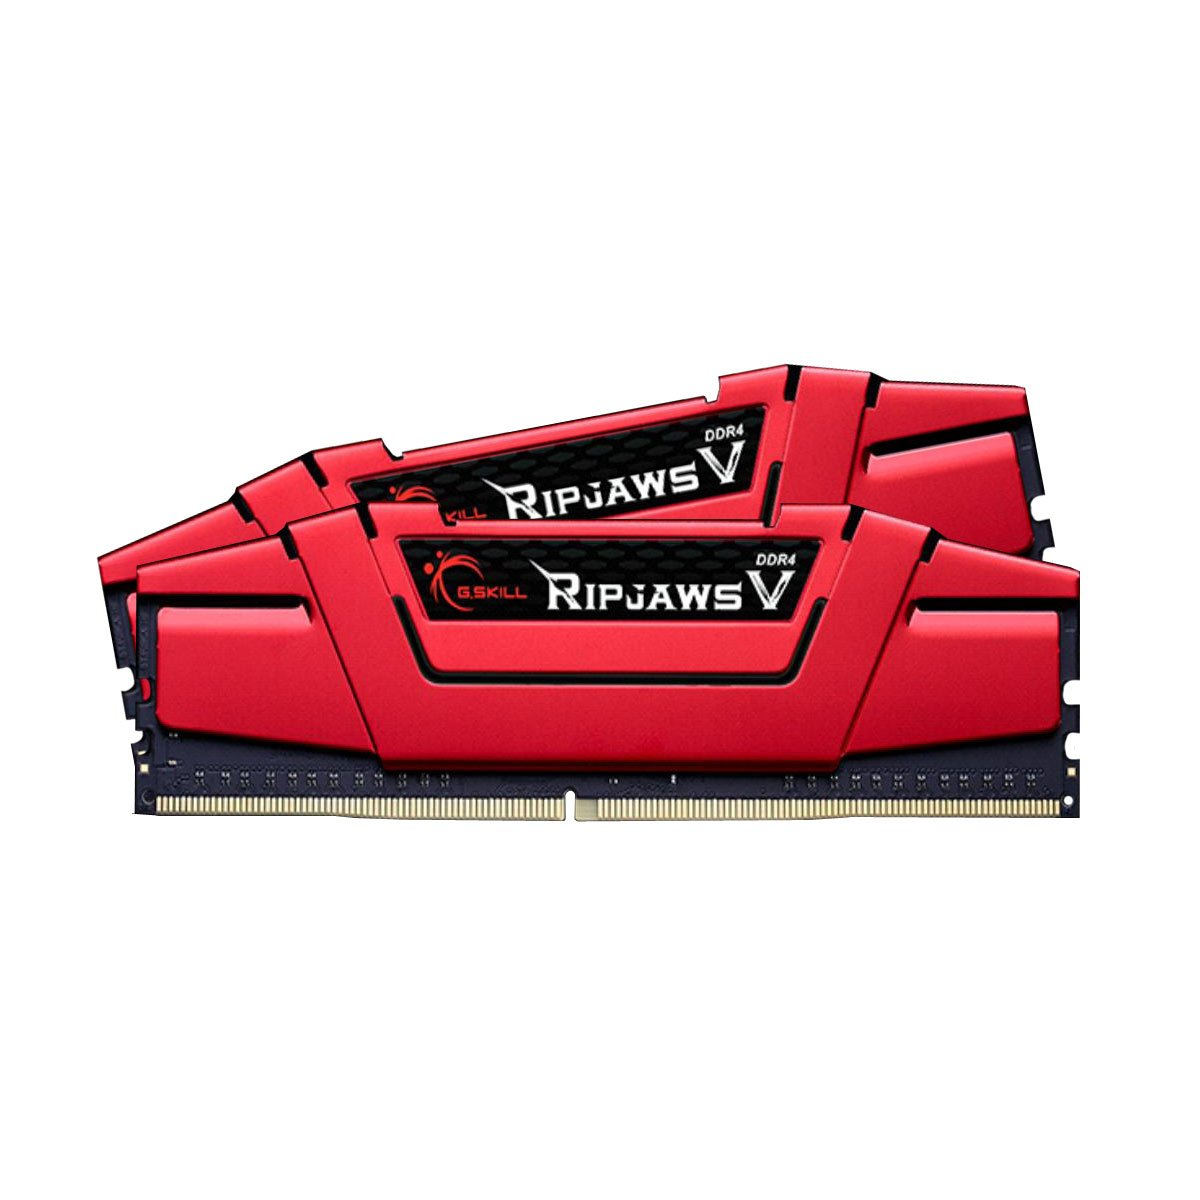 G.Skill Ripjaws V Series 32GB (2 x 16GB) 288-Pin SDRAM DDR4 2666 (PC4 21300) F4-2666C15D-32GVR